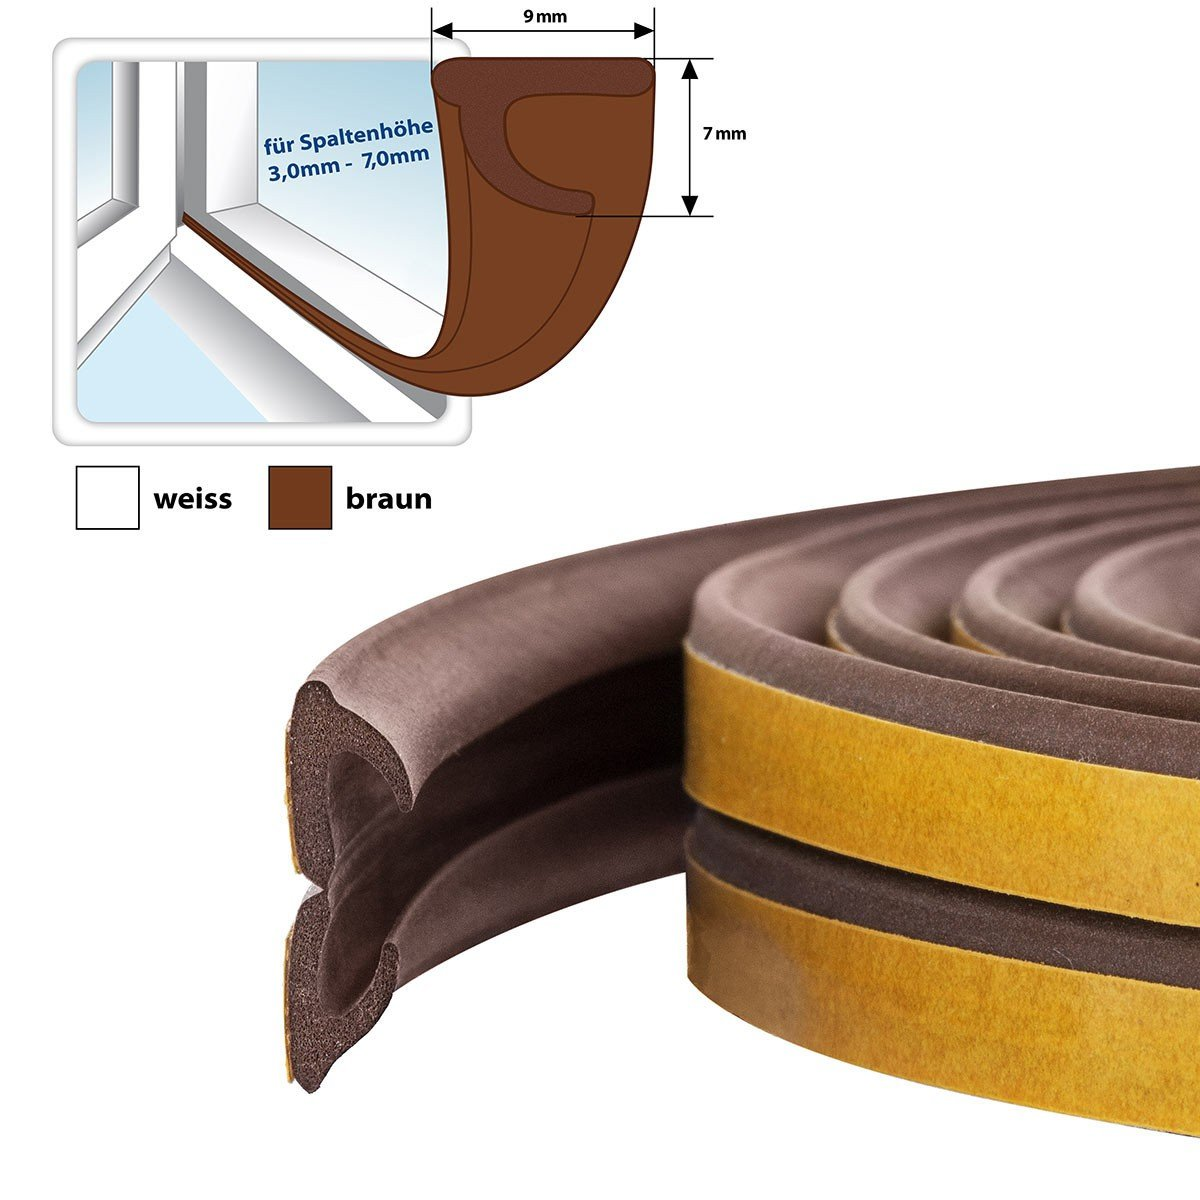 STEIGNER 40 m Self-Adhesive Window And Door Seal Profile V Brown Rubber Seal EPDM Drought Excluder Strip Weather Stripping